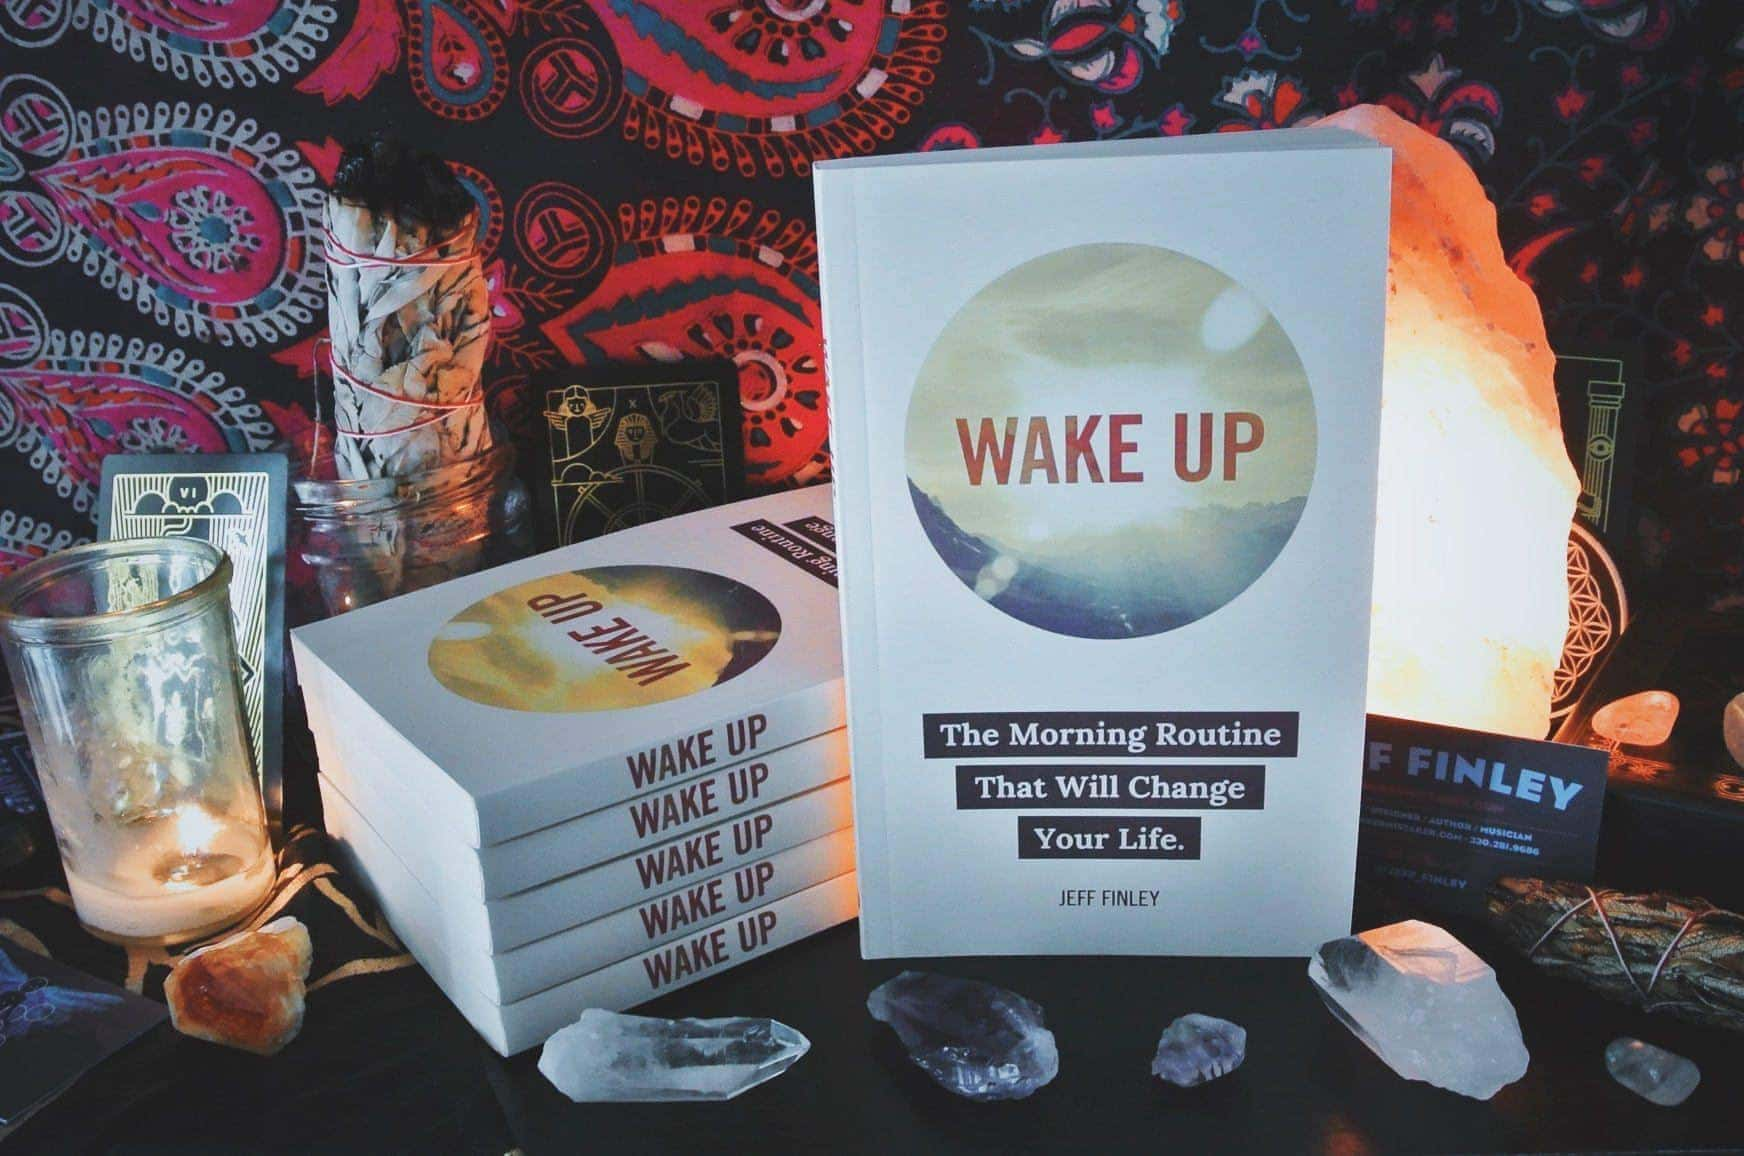 Wake Up: The Morning Routine That Will Change Your Life - Paperback Book by Jeff Finley